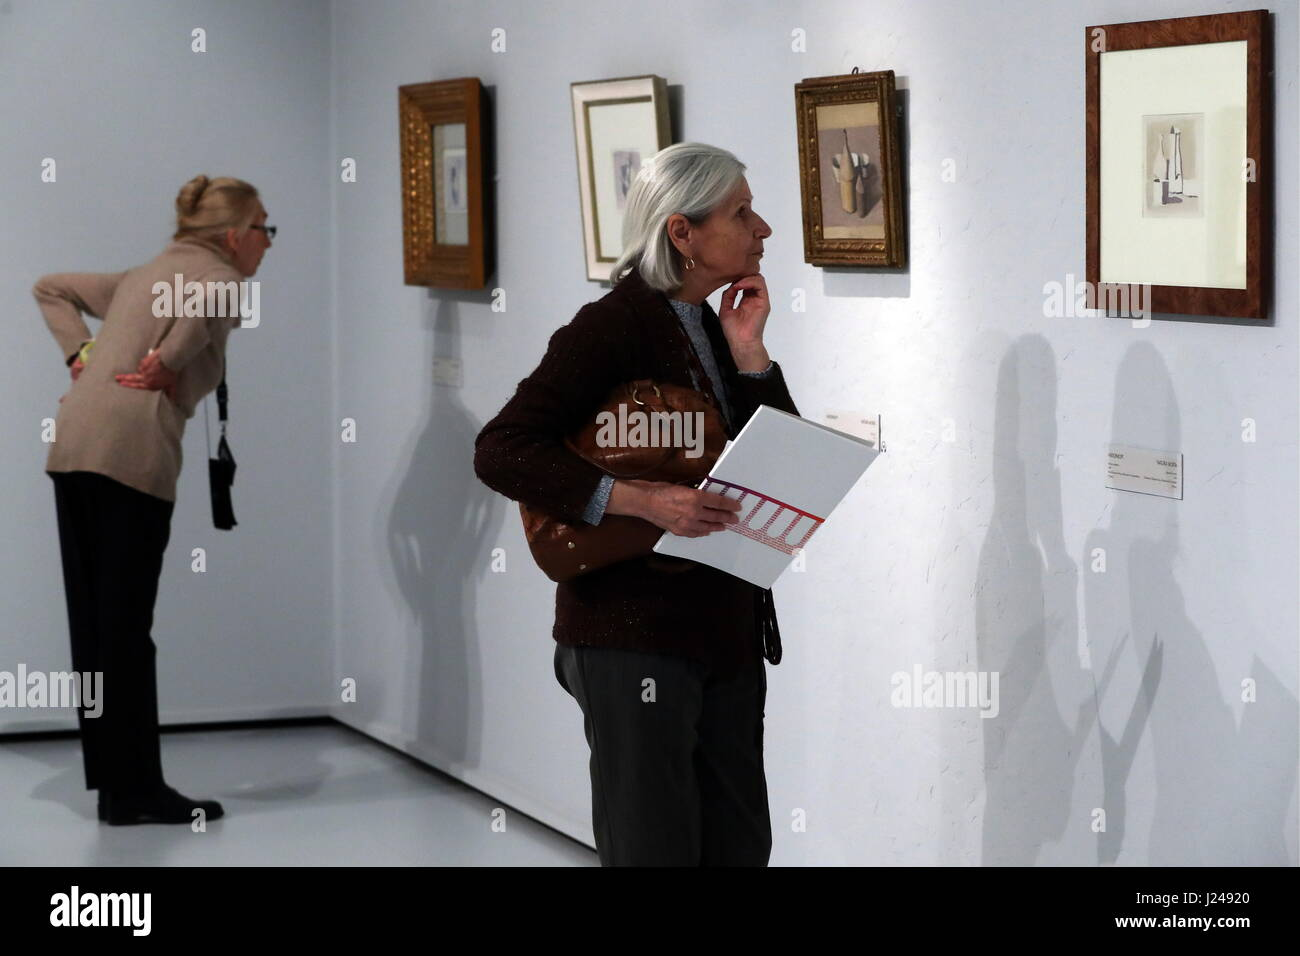 Moscow, Russia. 24th Apr, 2017. Visitors at an exhibition of works by Italian painter and printmaker Giorgio Morandi - Stock Image